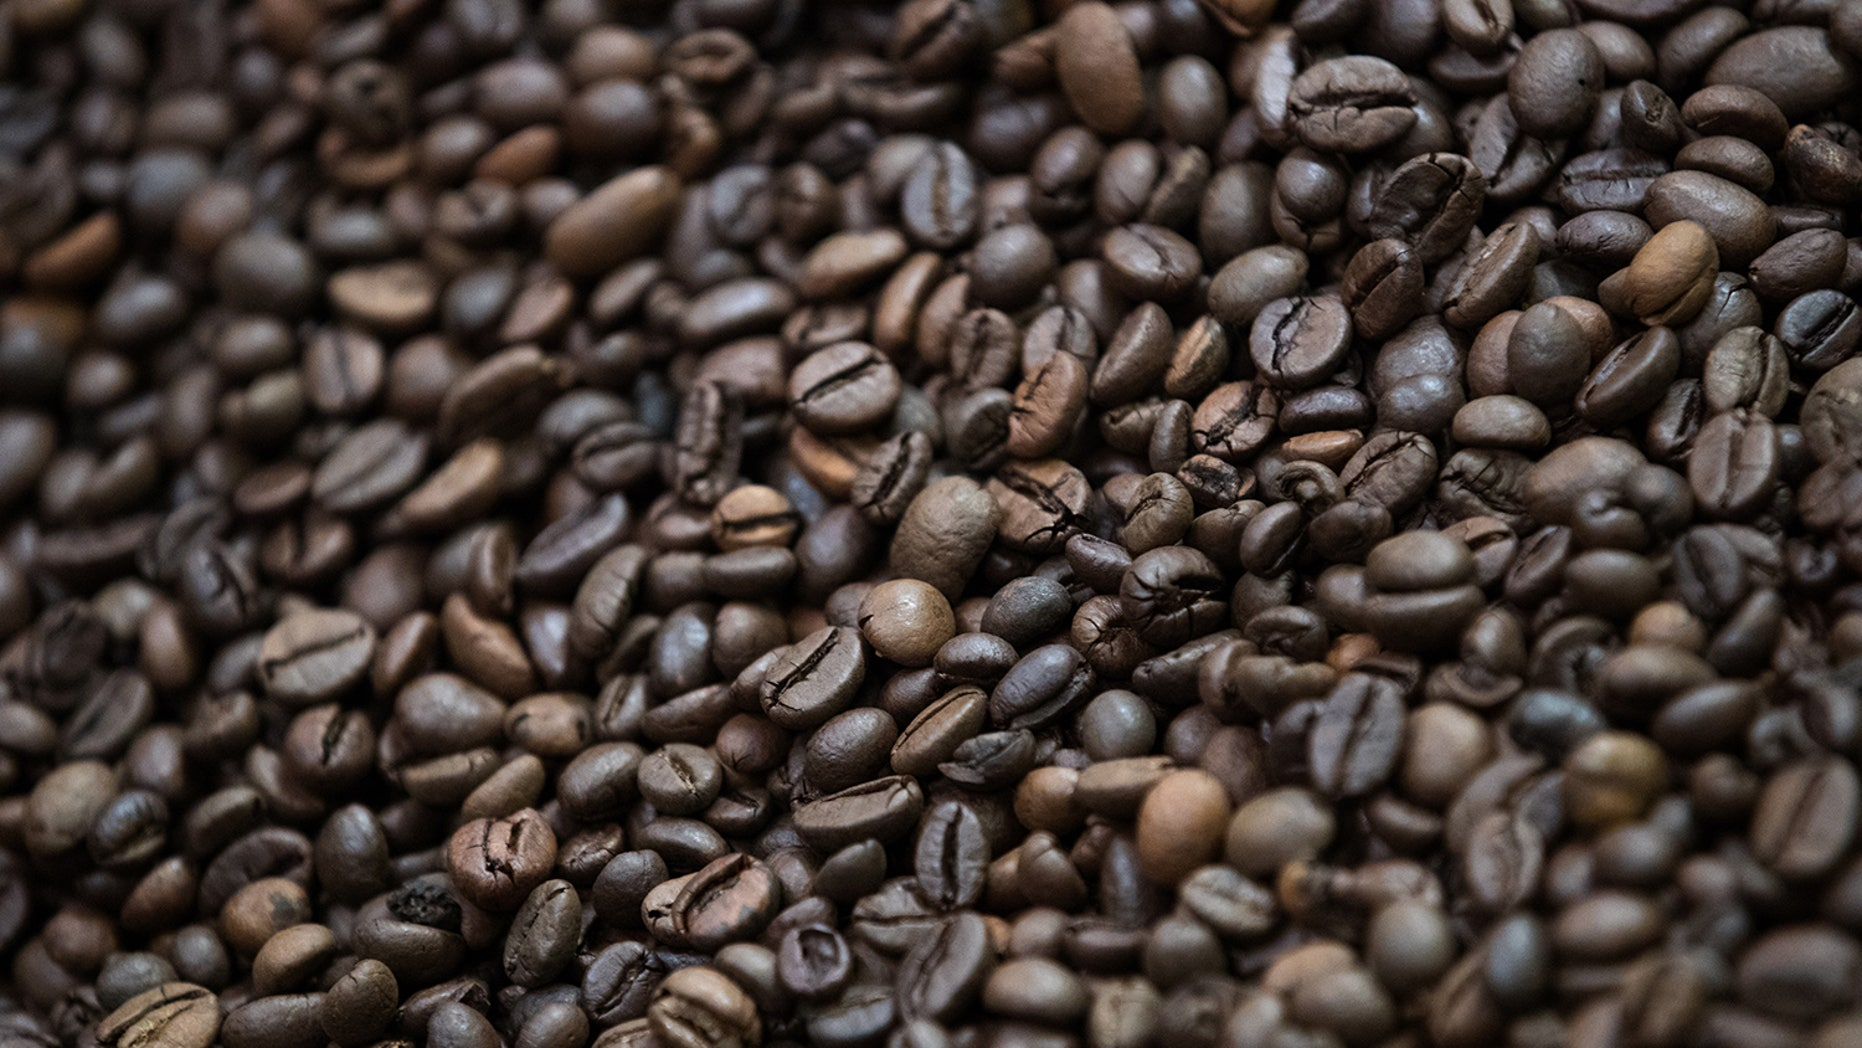 New legislation combined with international weather conditions could raise the cost of coffee.